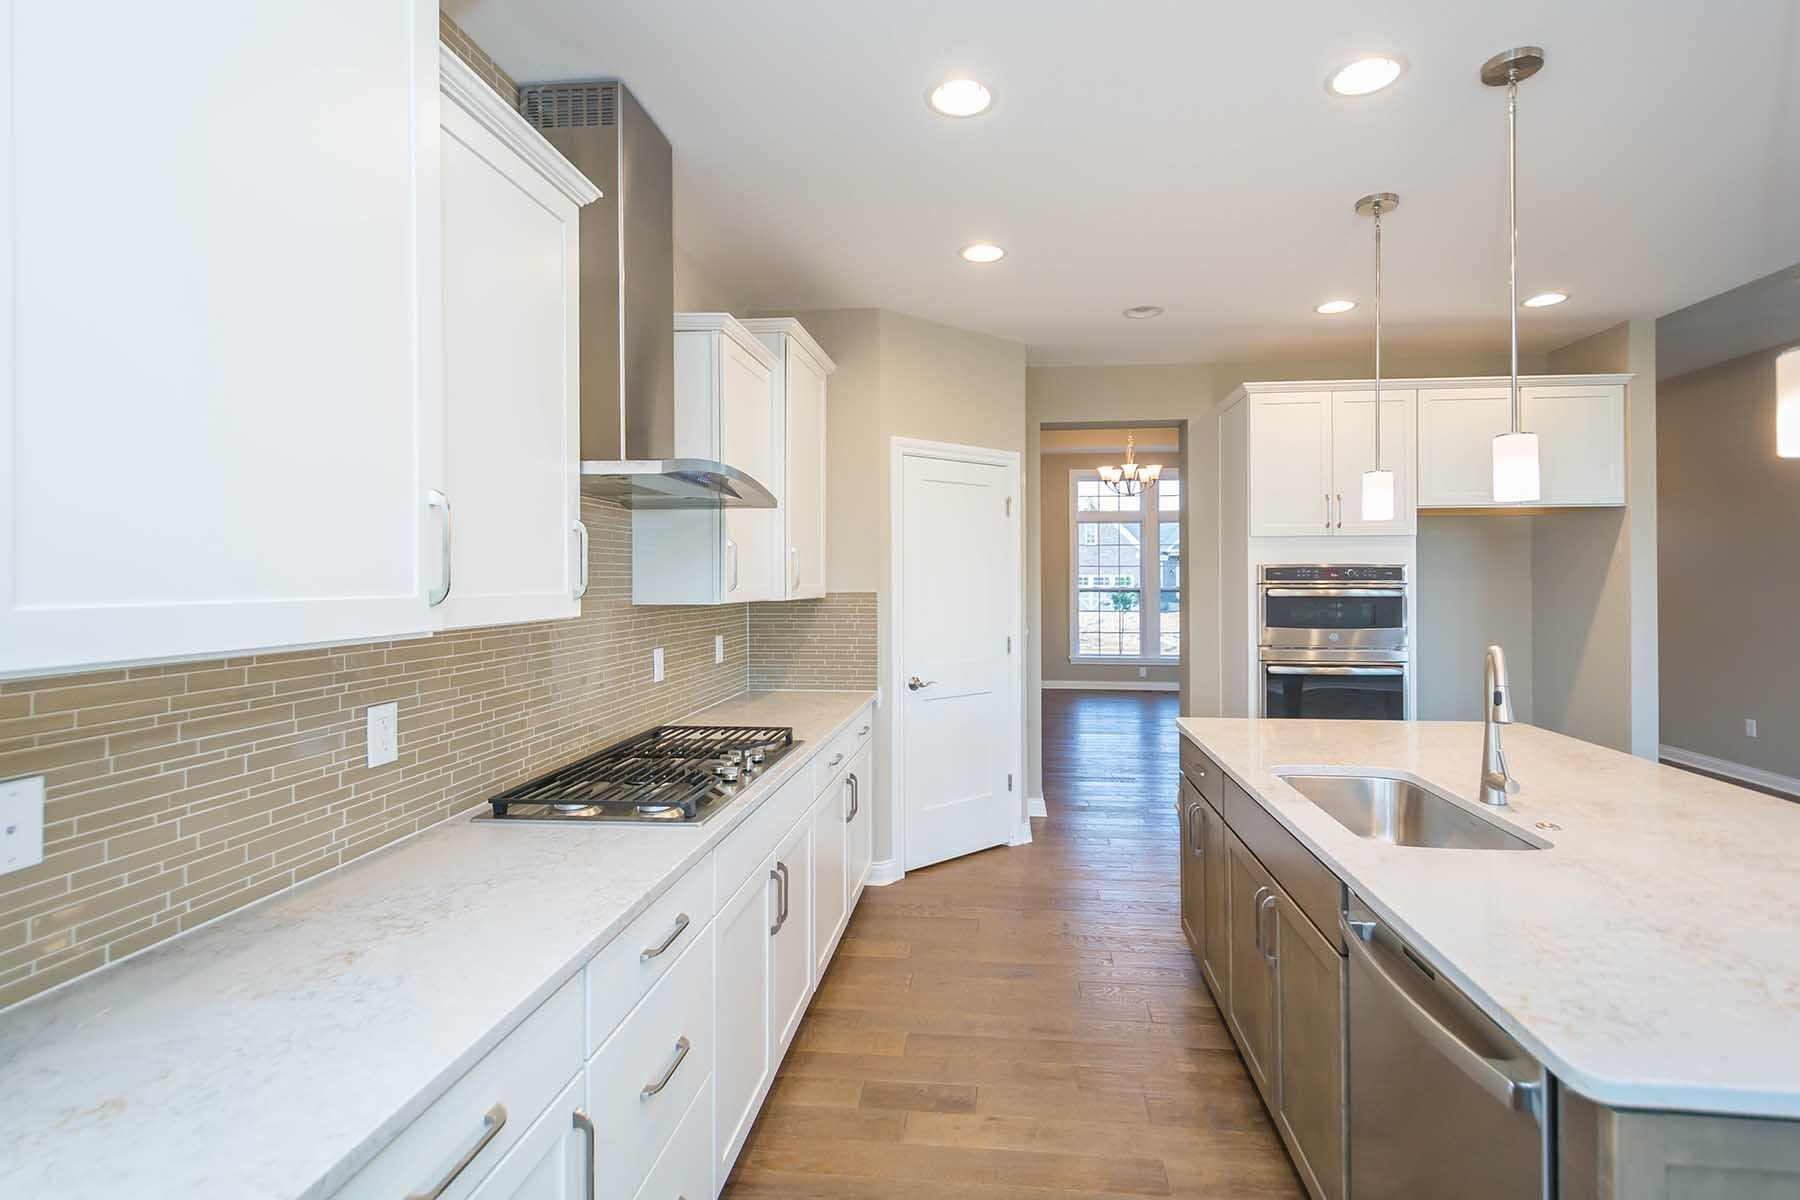 Kitchen featured in the Thorton By M/I Homes in Cincinnati, OH